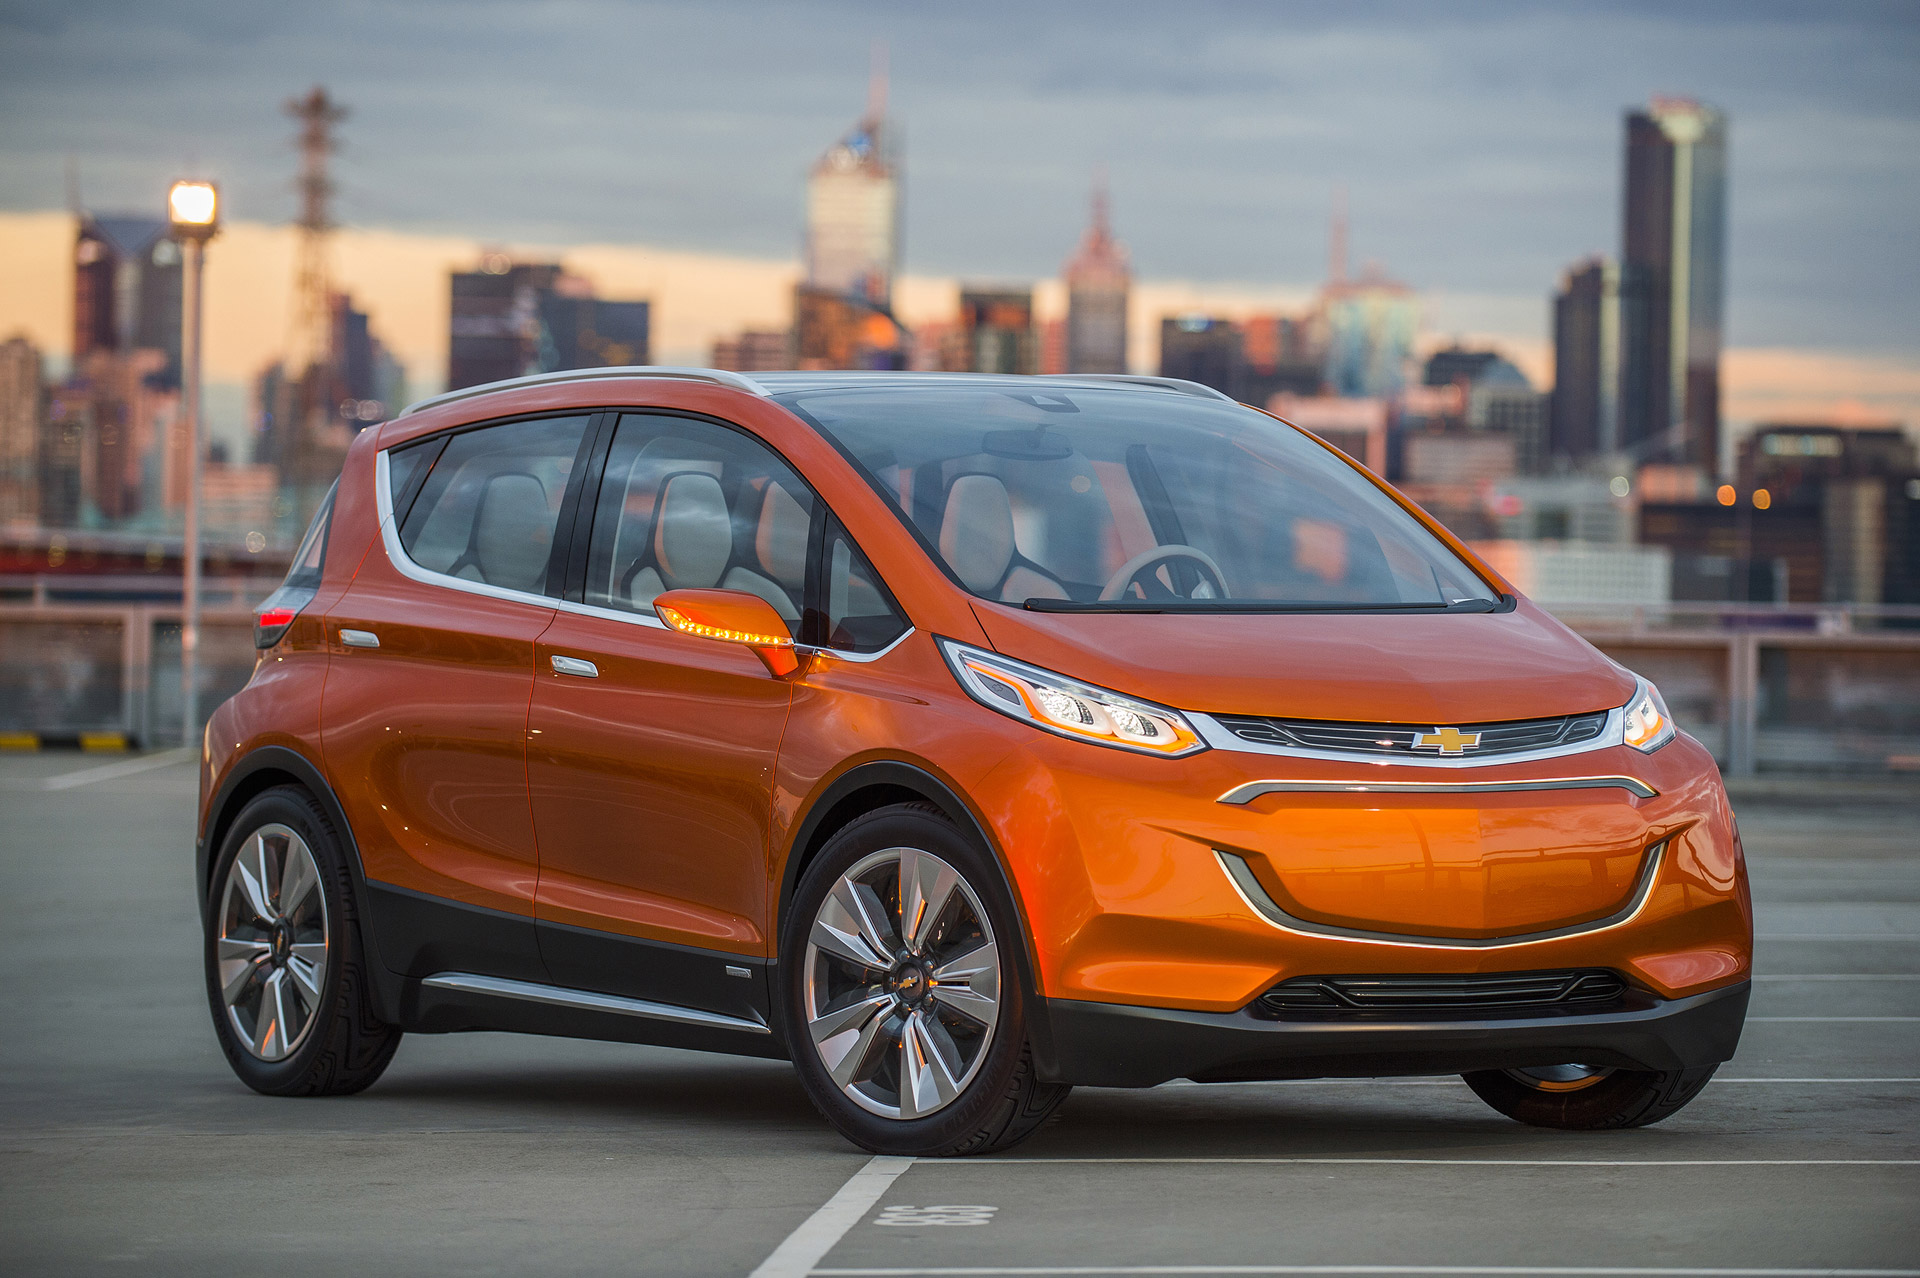 2018 Chevrolet Bolt Electric Car What It Is Isn T Means For Tesla